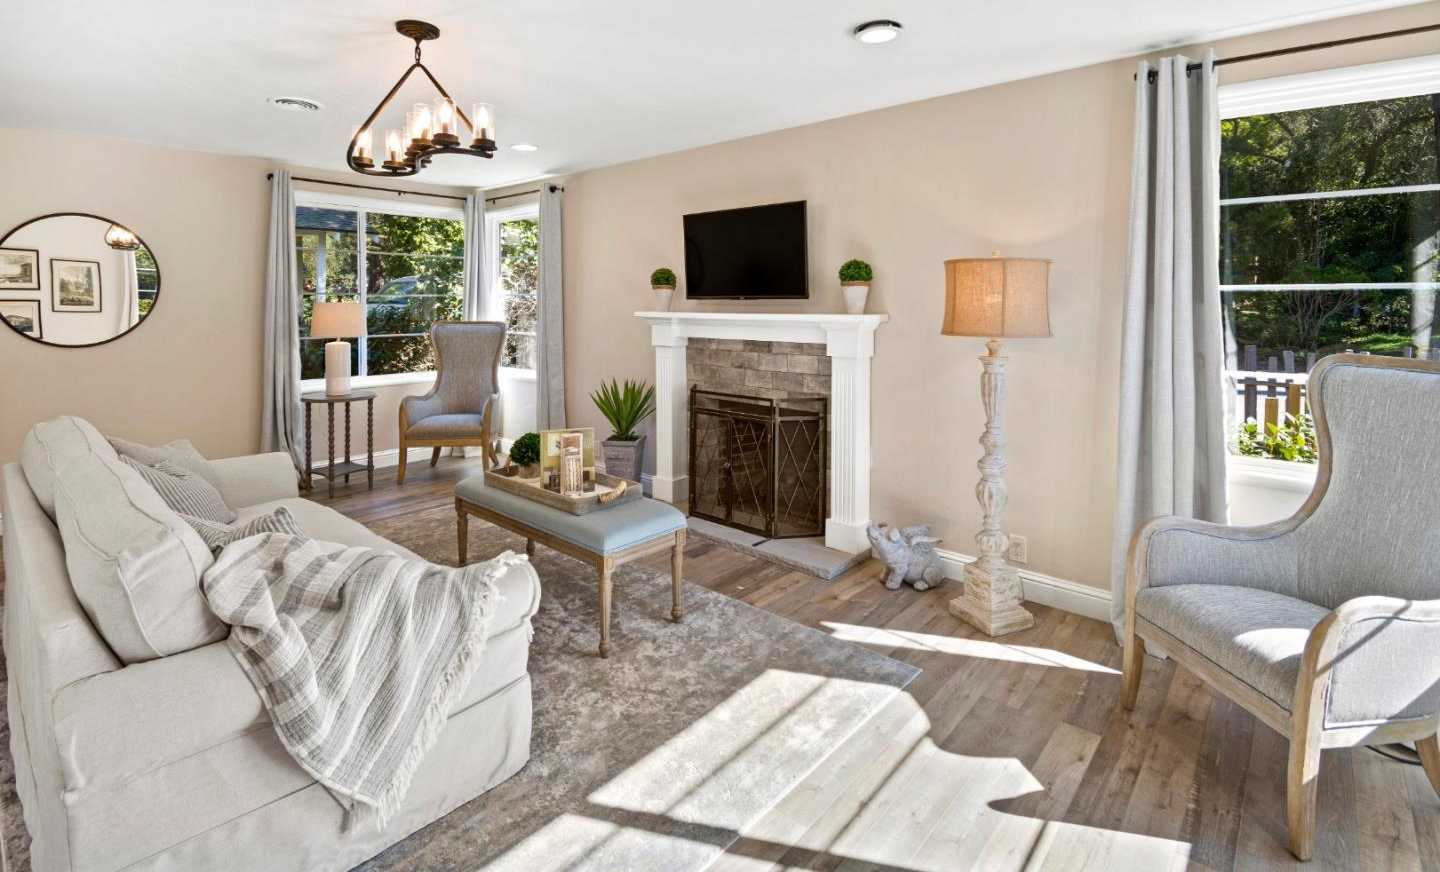 $1,175,000 - 2Br/1Ba -  for Sale in Carmel